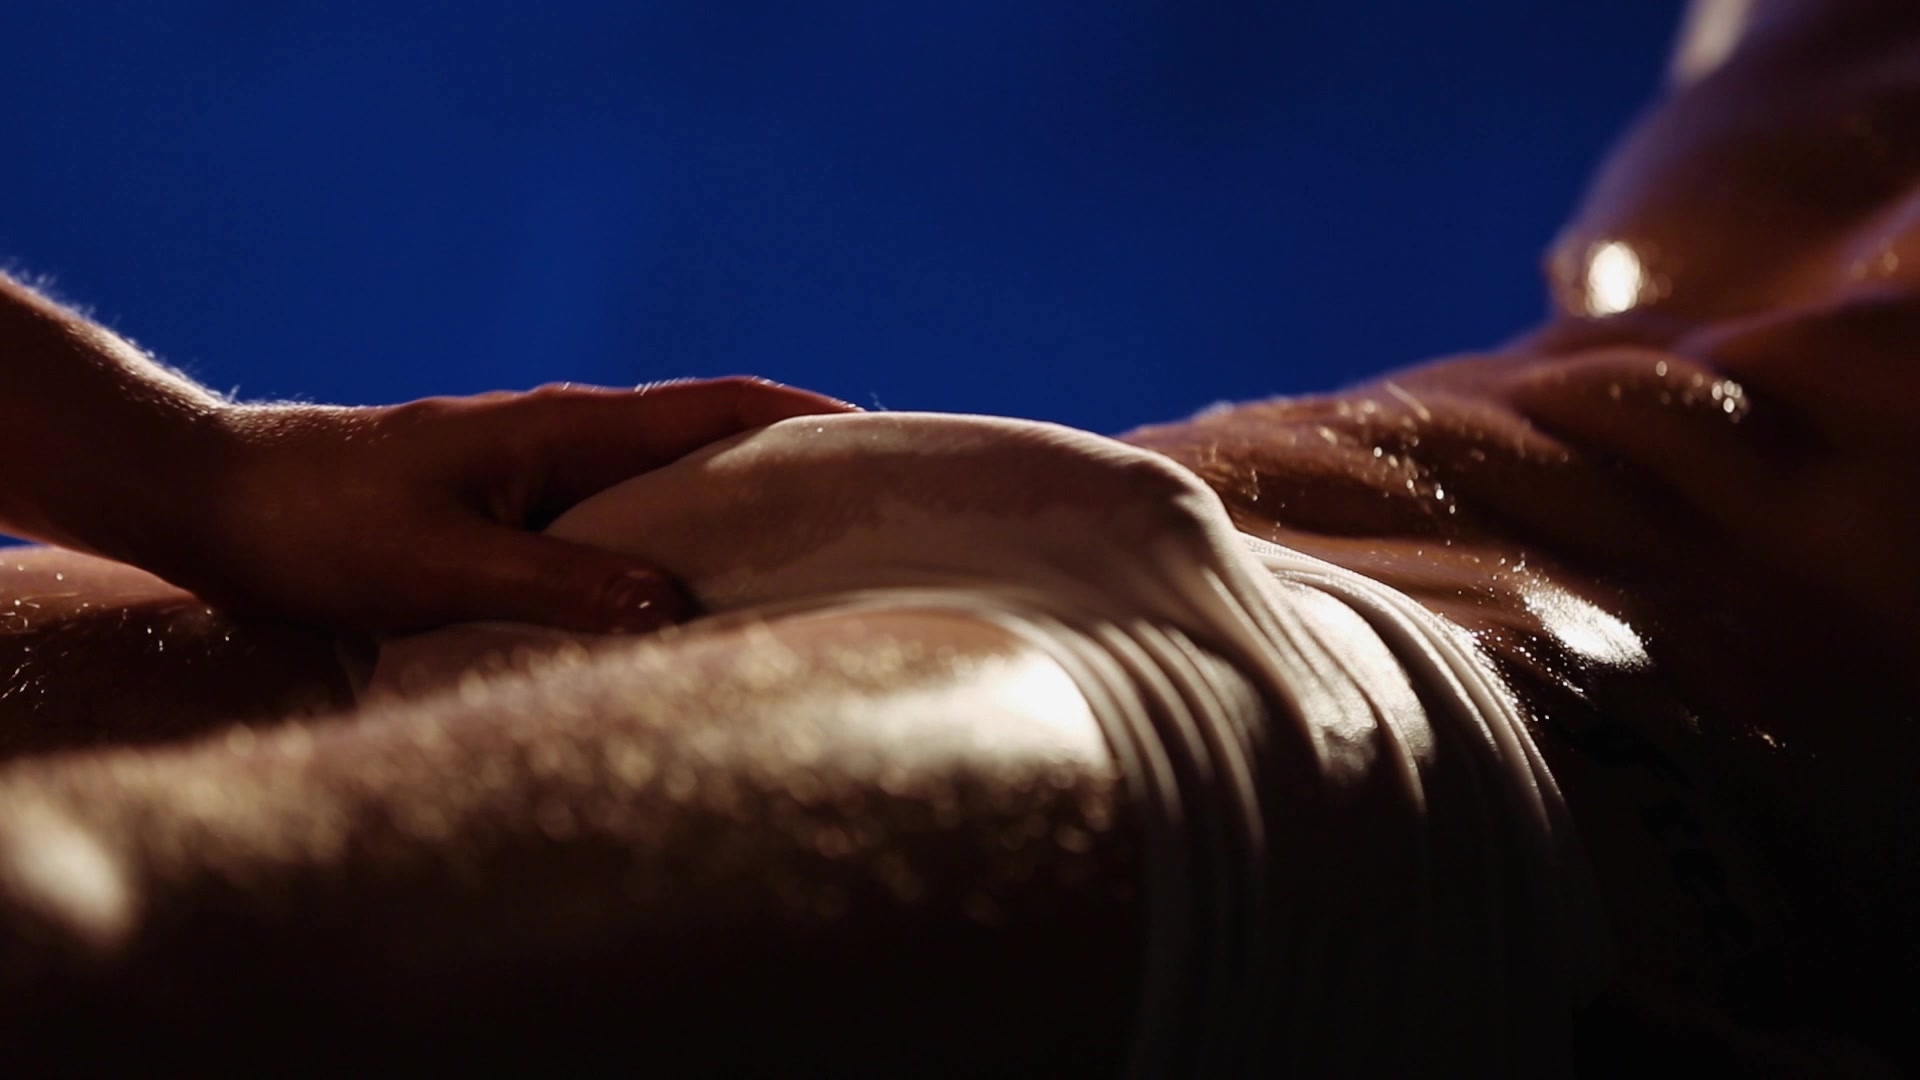 The men who fuel the erotic massage industry